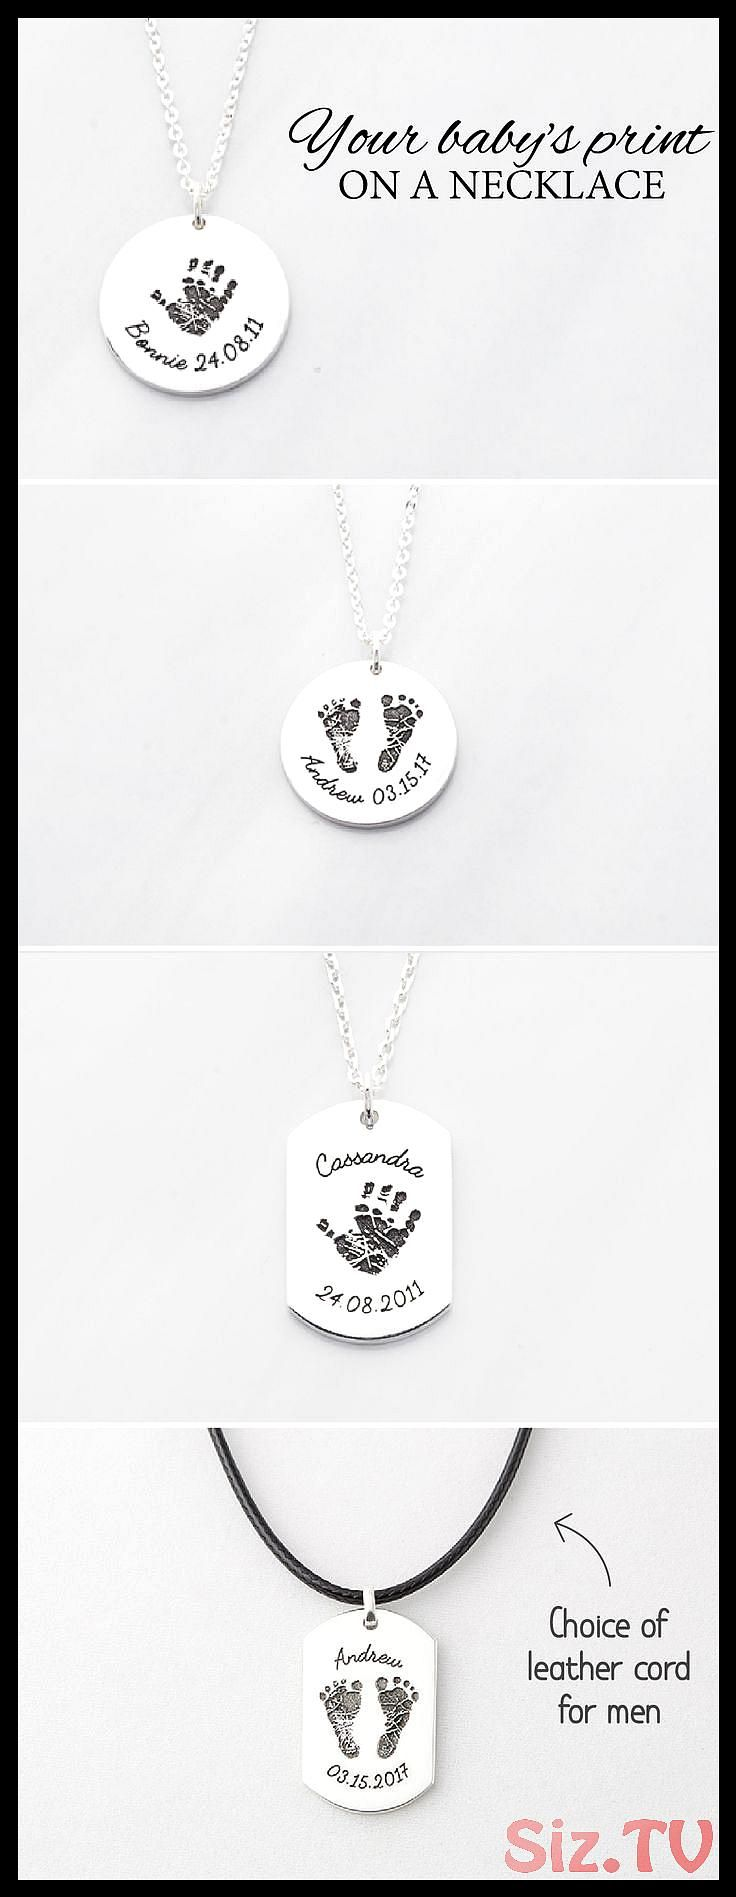 Baby Handprint Necklace Baby Footprint Necklace New Mom Necklace New Dad Necklace Custom Memorial Jewelry Baby Gift Ideas New Baby Handprint Necklace Baby Footprint Neckl...